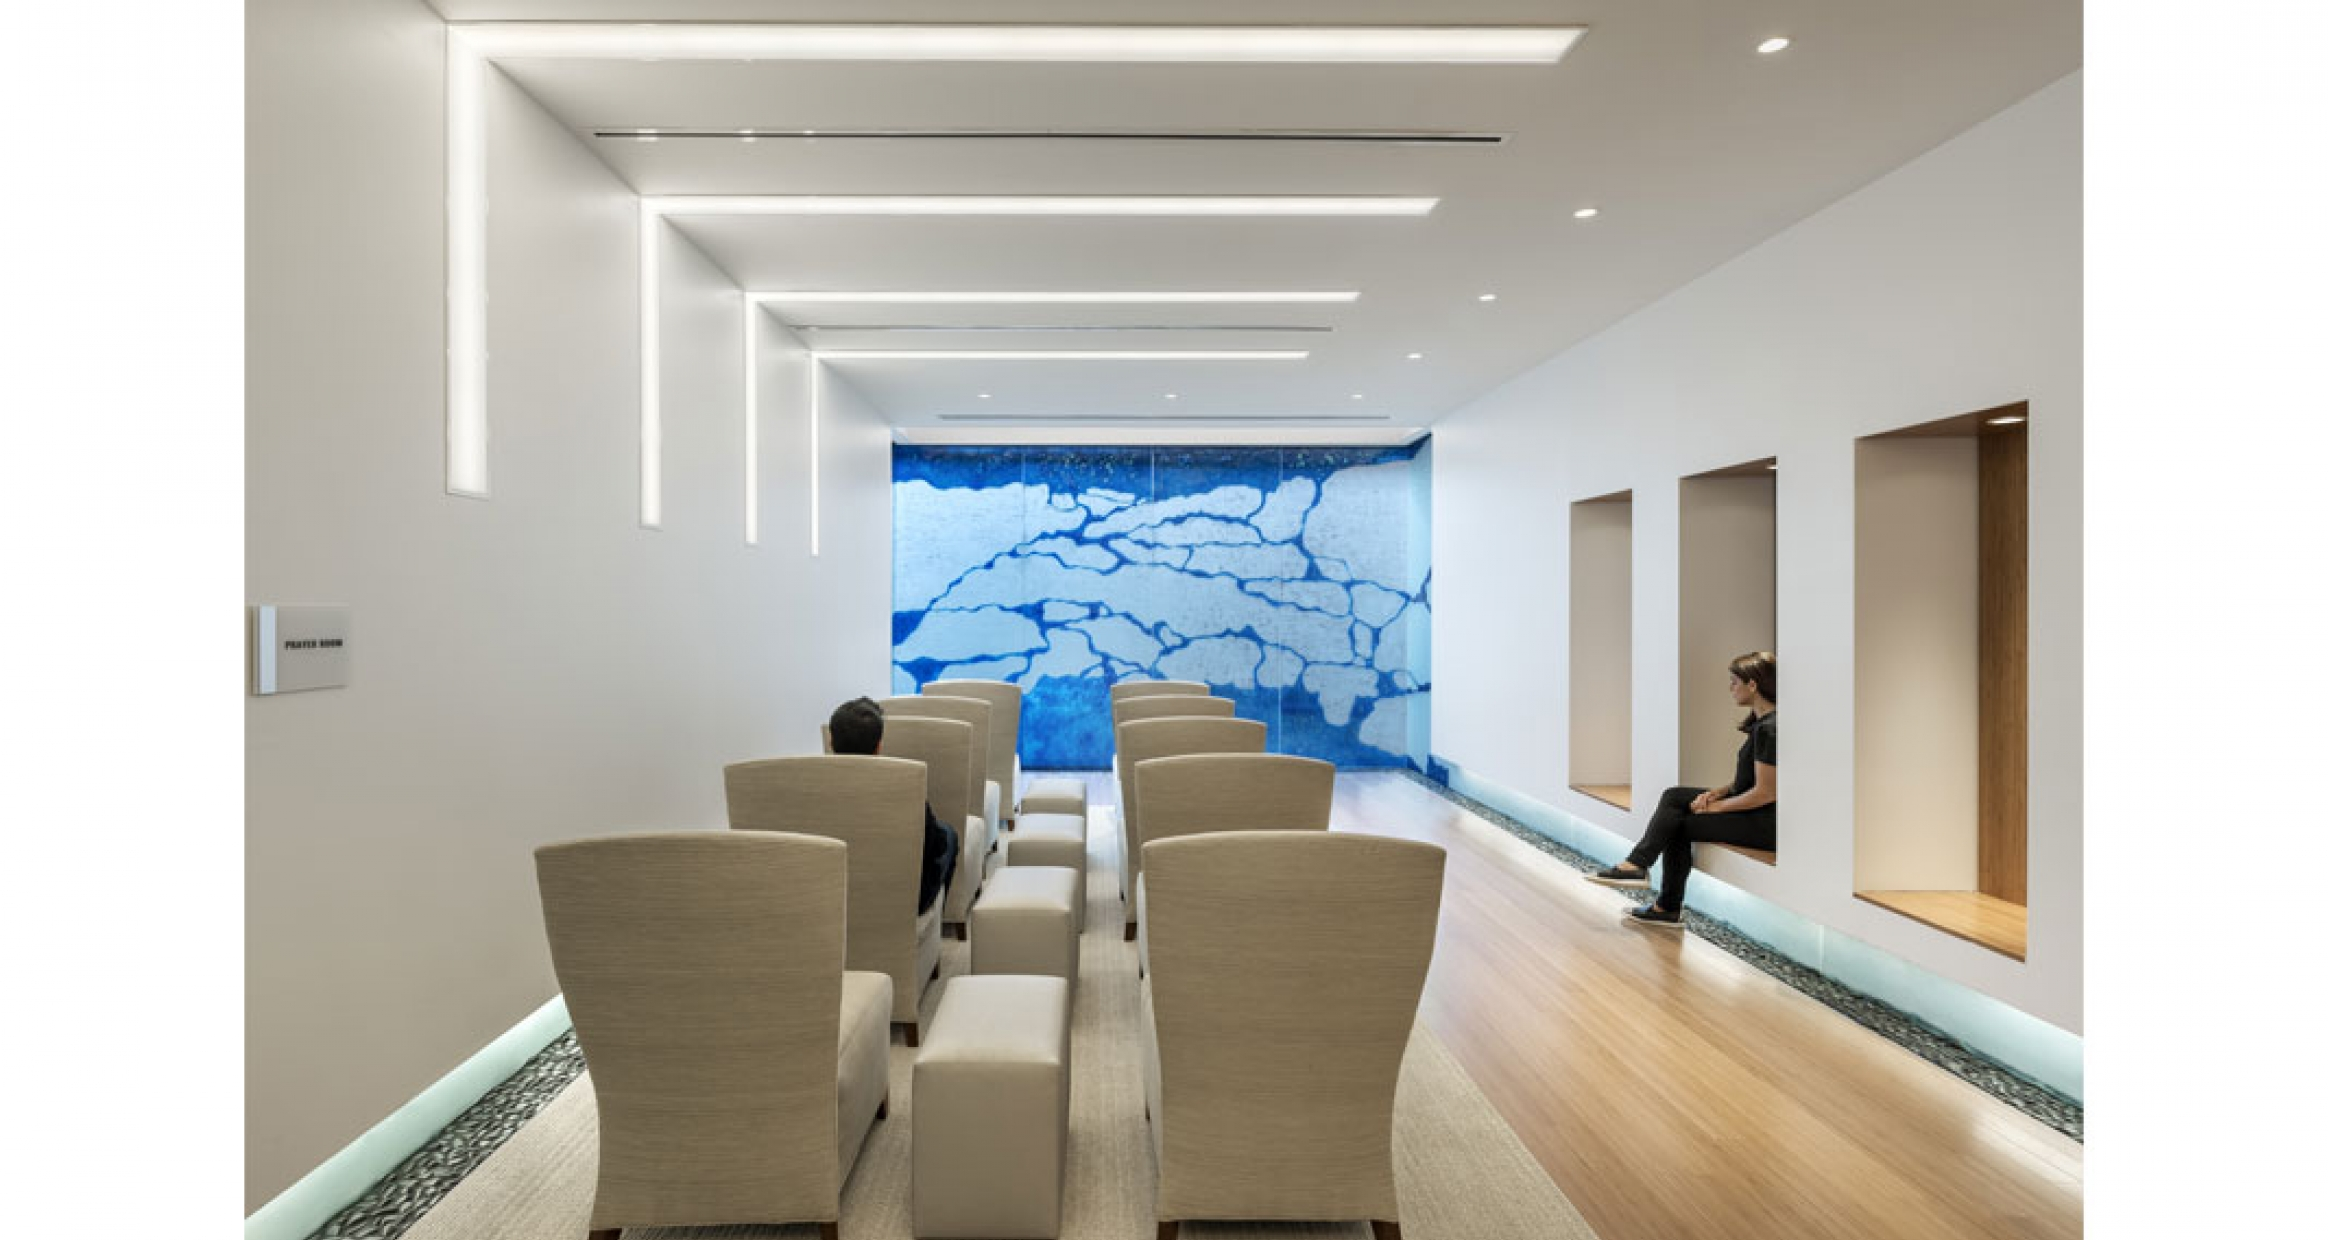 The chapel's features glass art wall by Gordon Huether features radiant blue details, reminiscent of gently flowing water in a creek, evoking a sense of peace and calmness, conveying an uplifting sense of healing and well-being.